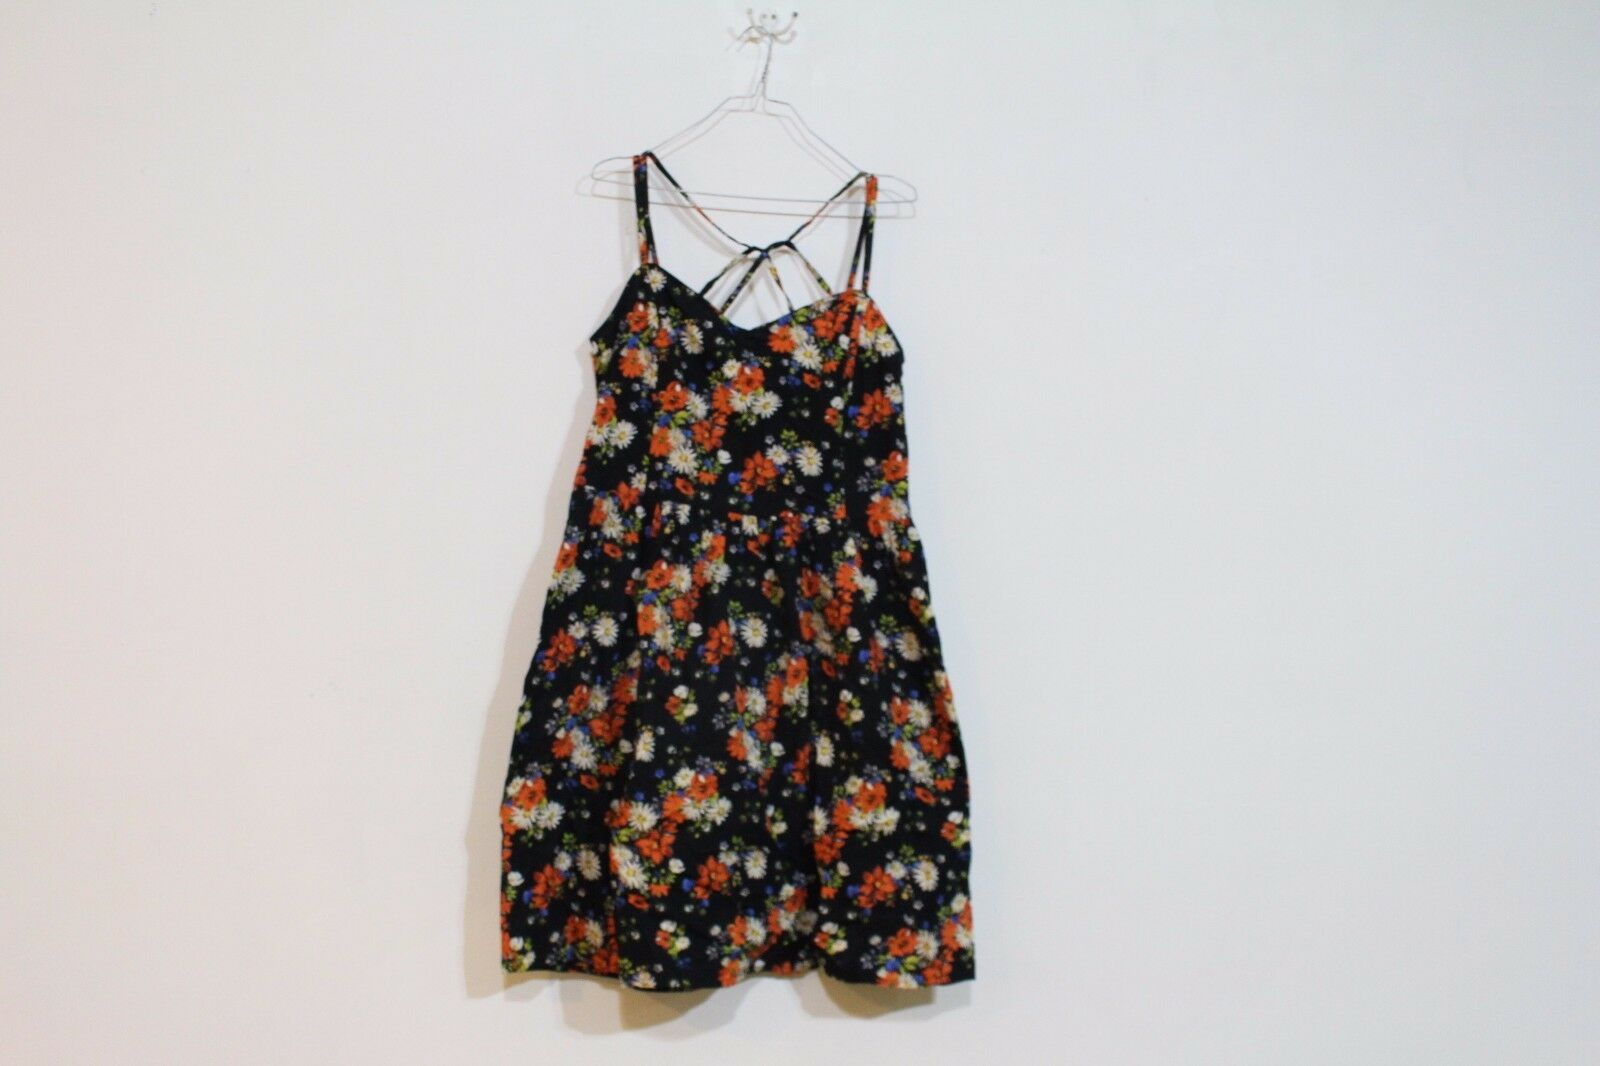 LONG TALL SALLY FLORAL COTTON SUN DRESS SIZE 14 US NEW